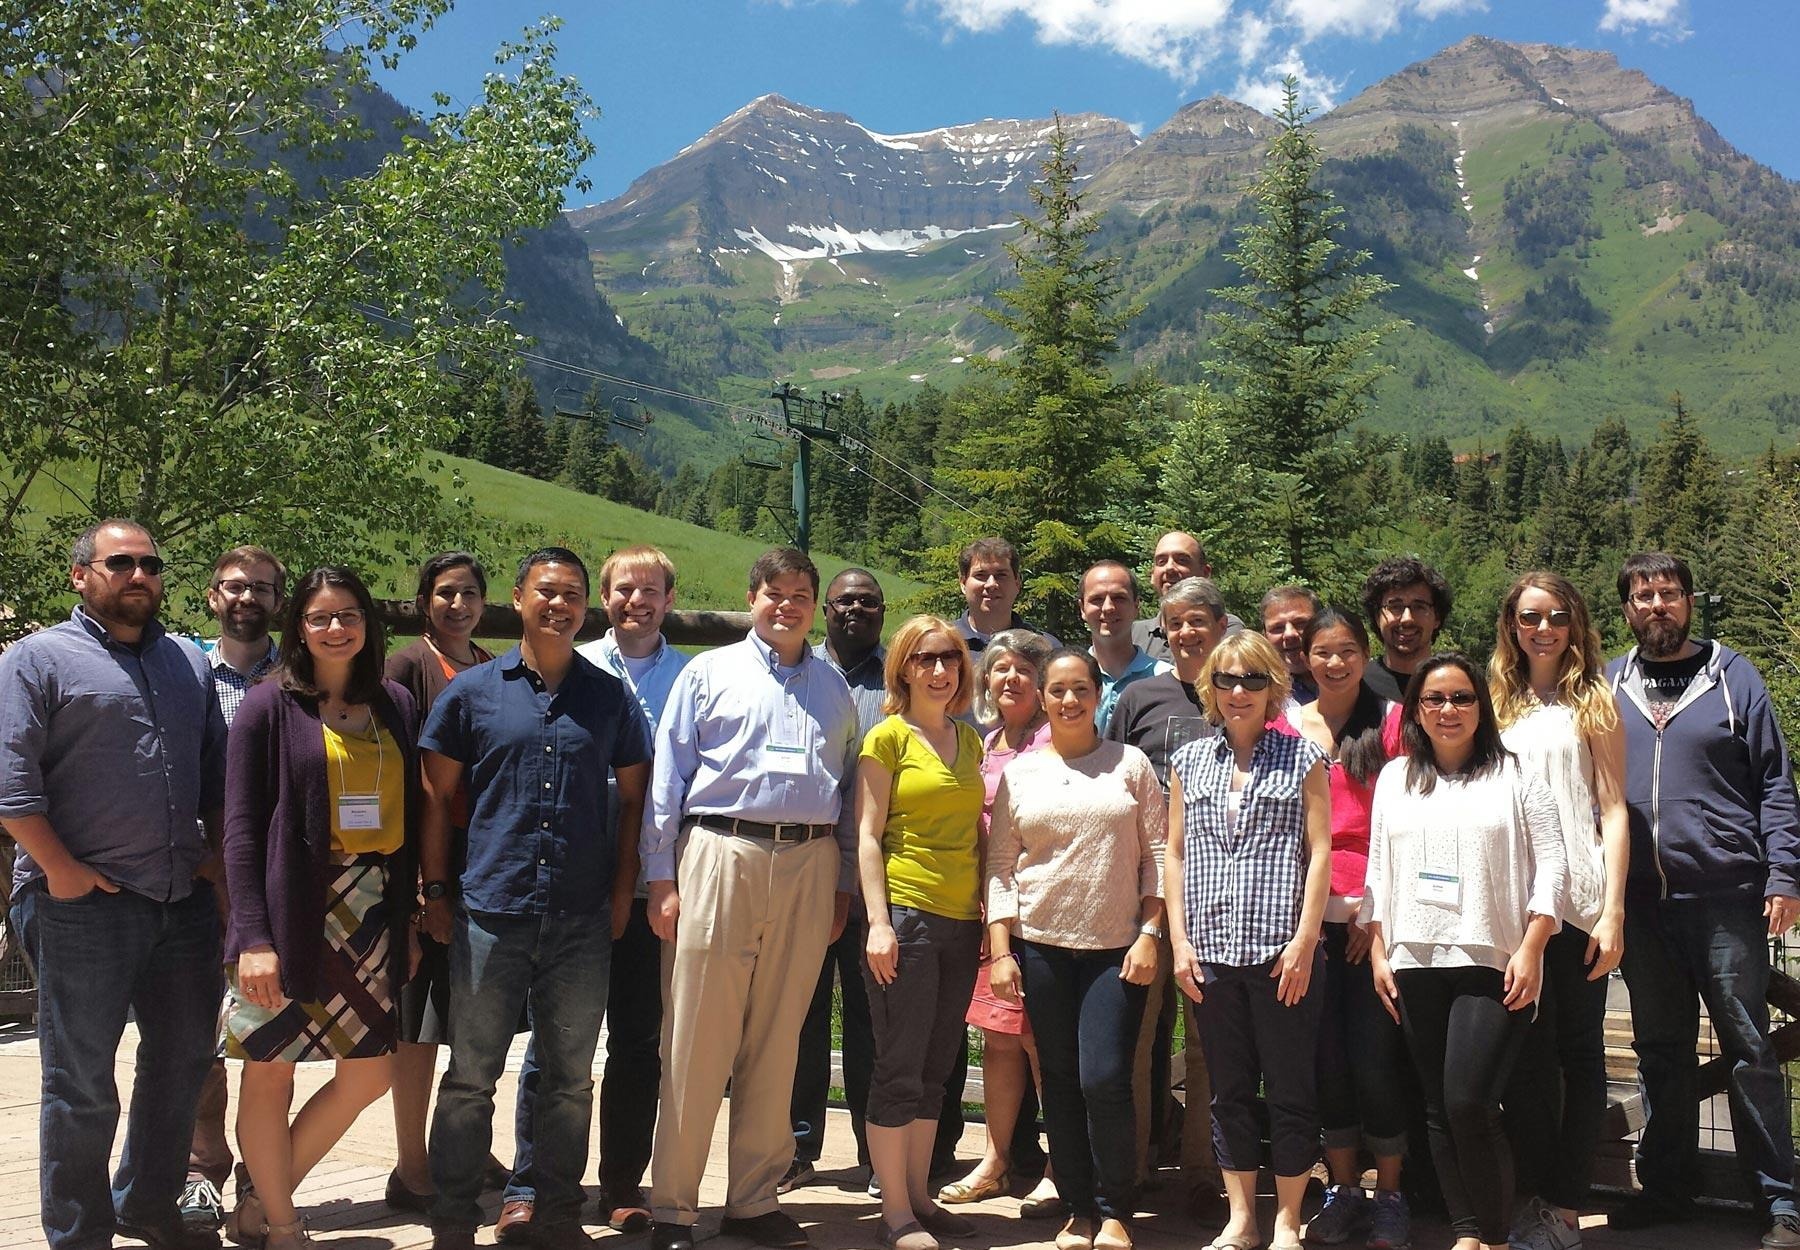 2015 CCES Conference attendees meet in Sundance, Utah